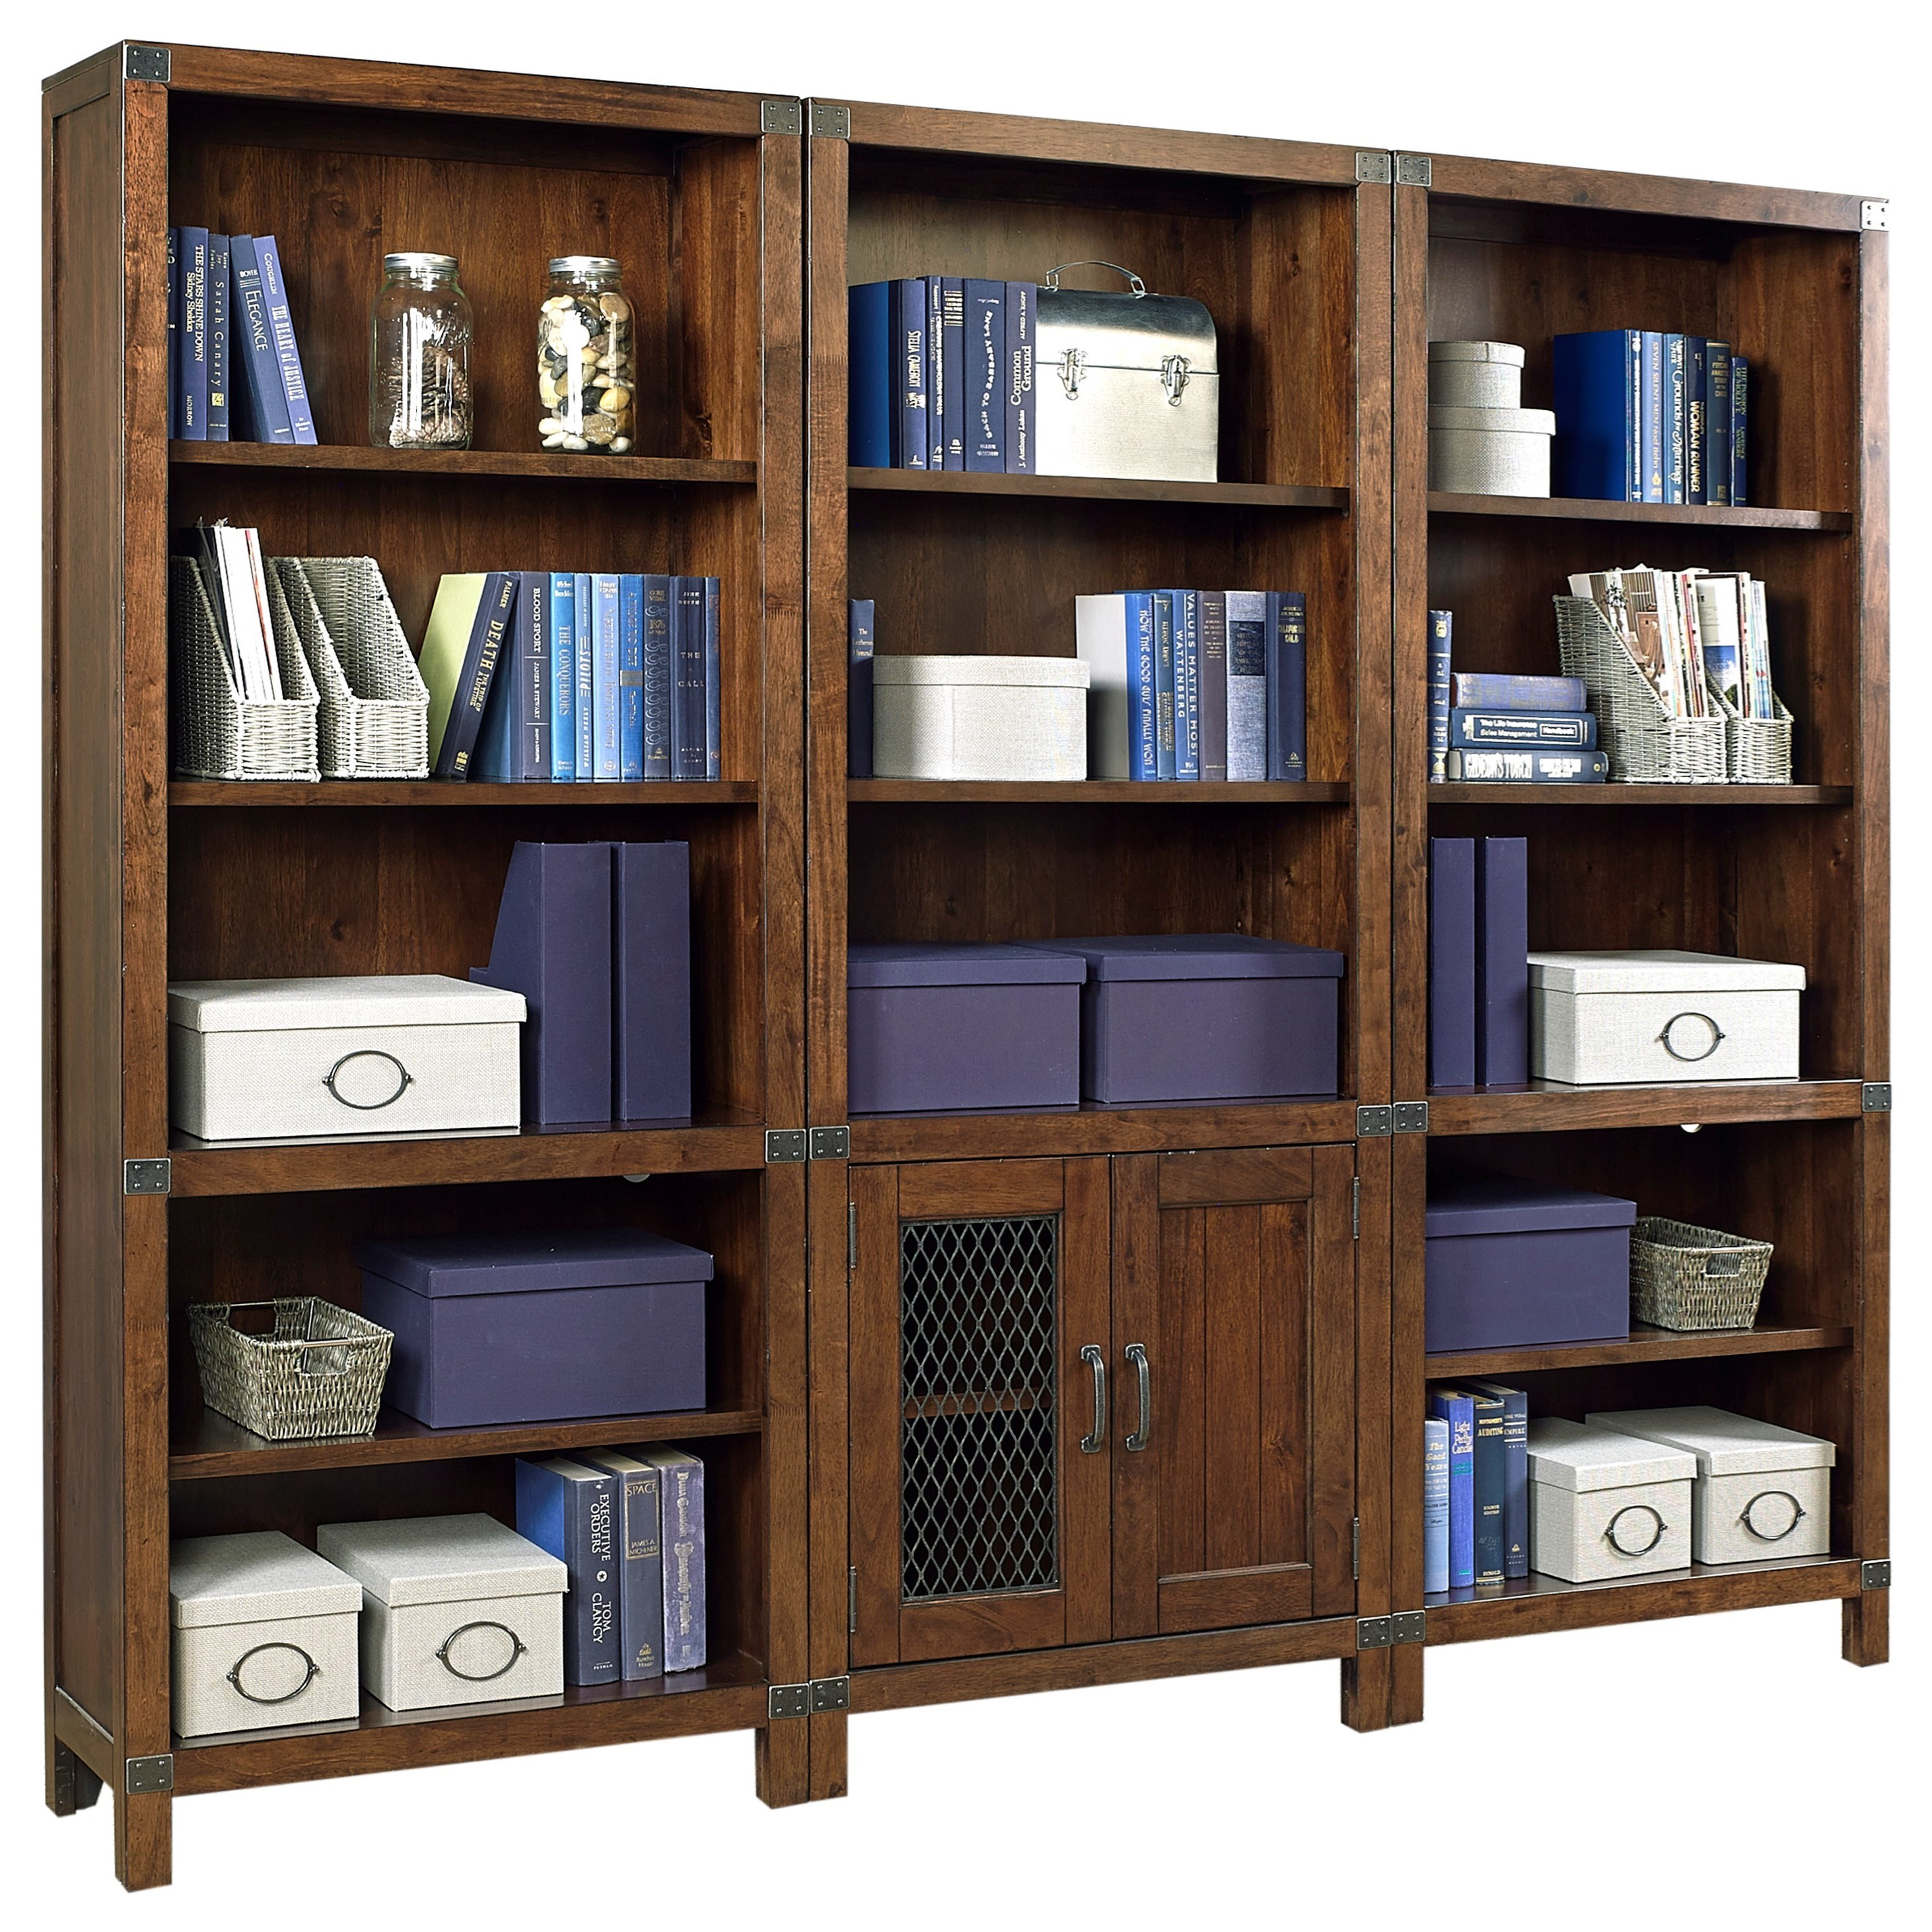 Canfield Bookcase Wall by Aspenhome at Fisher Home Furnishings